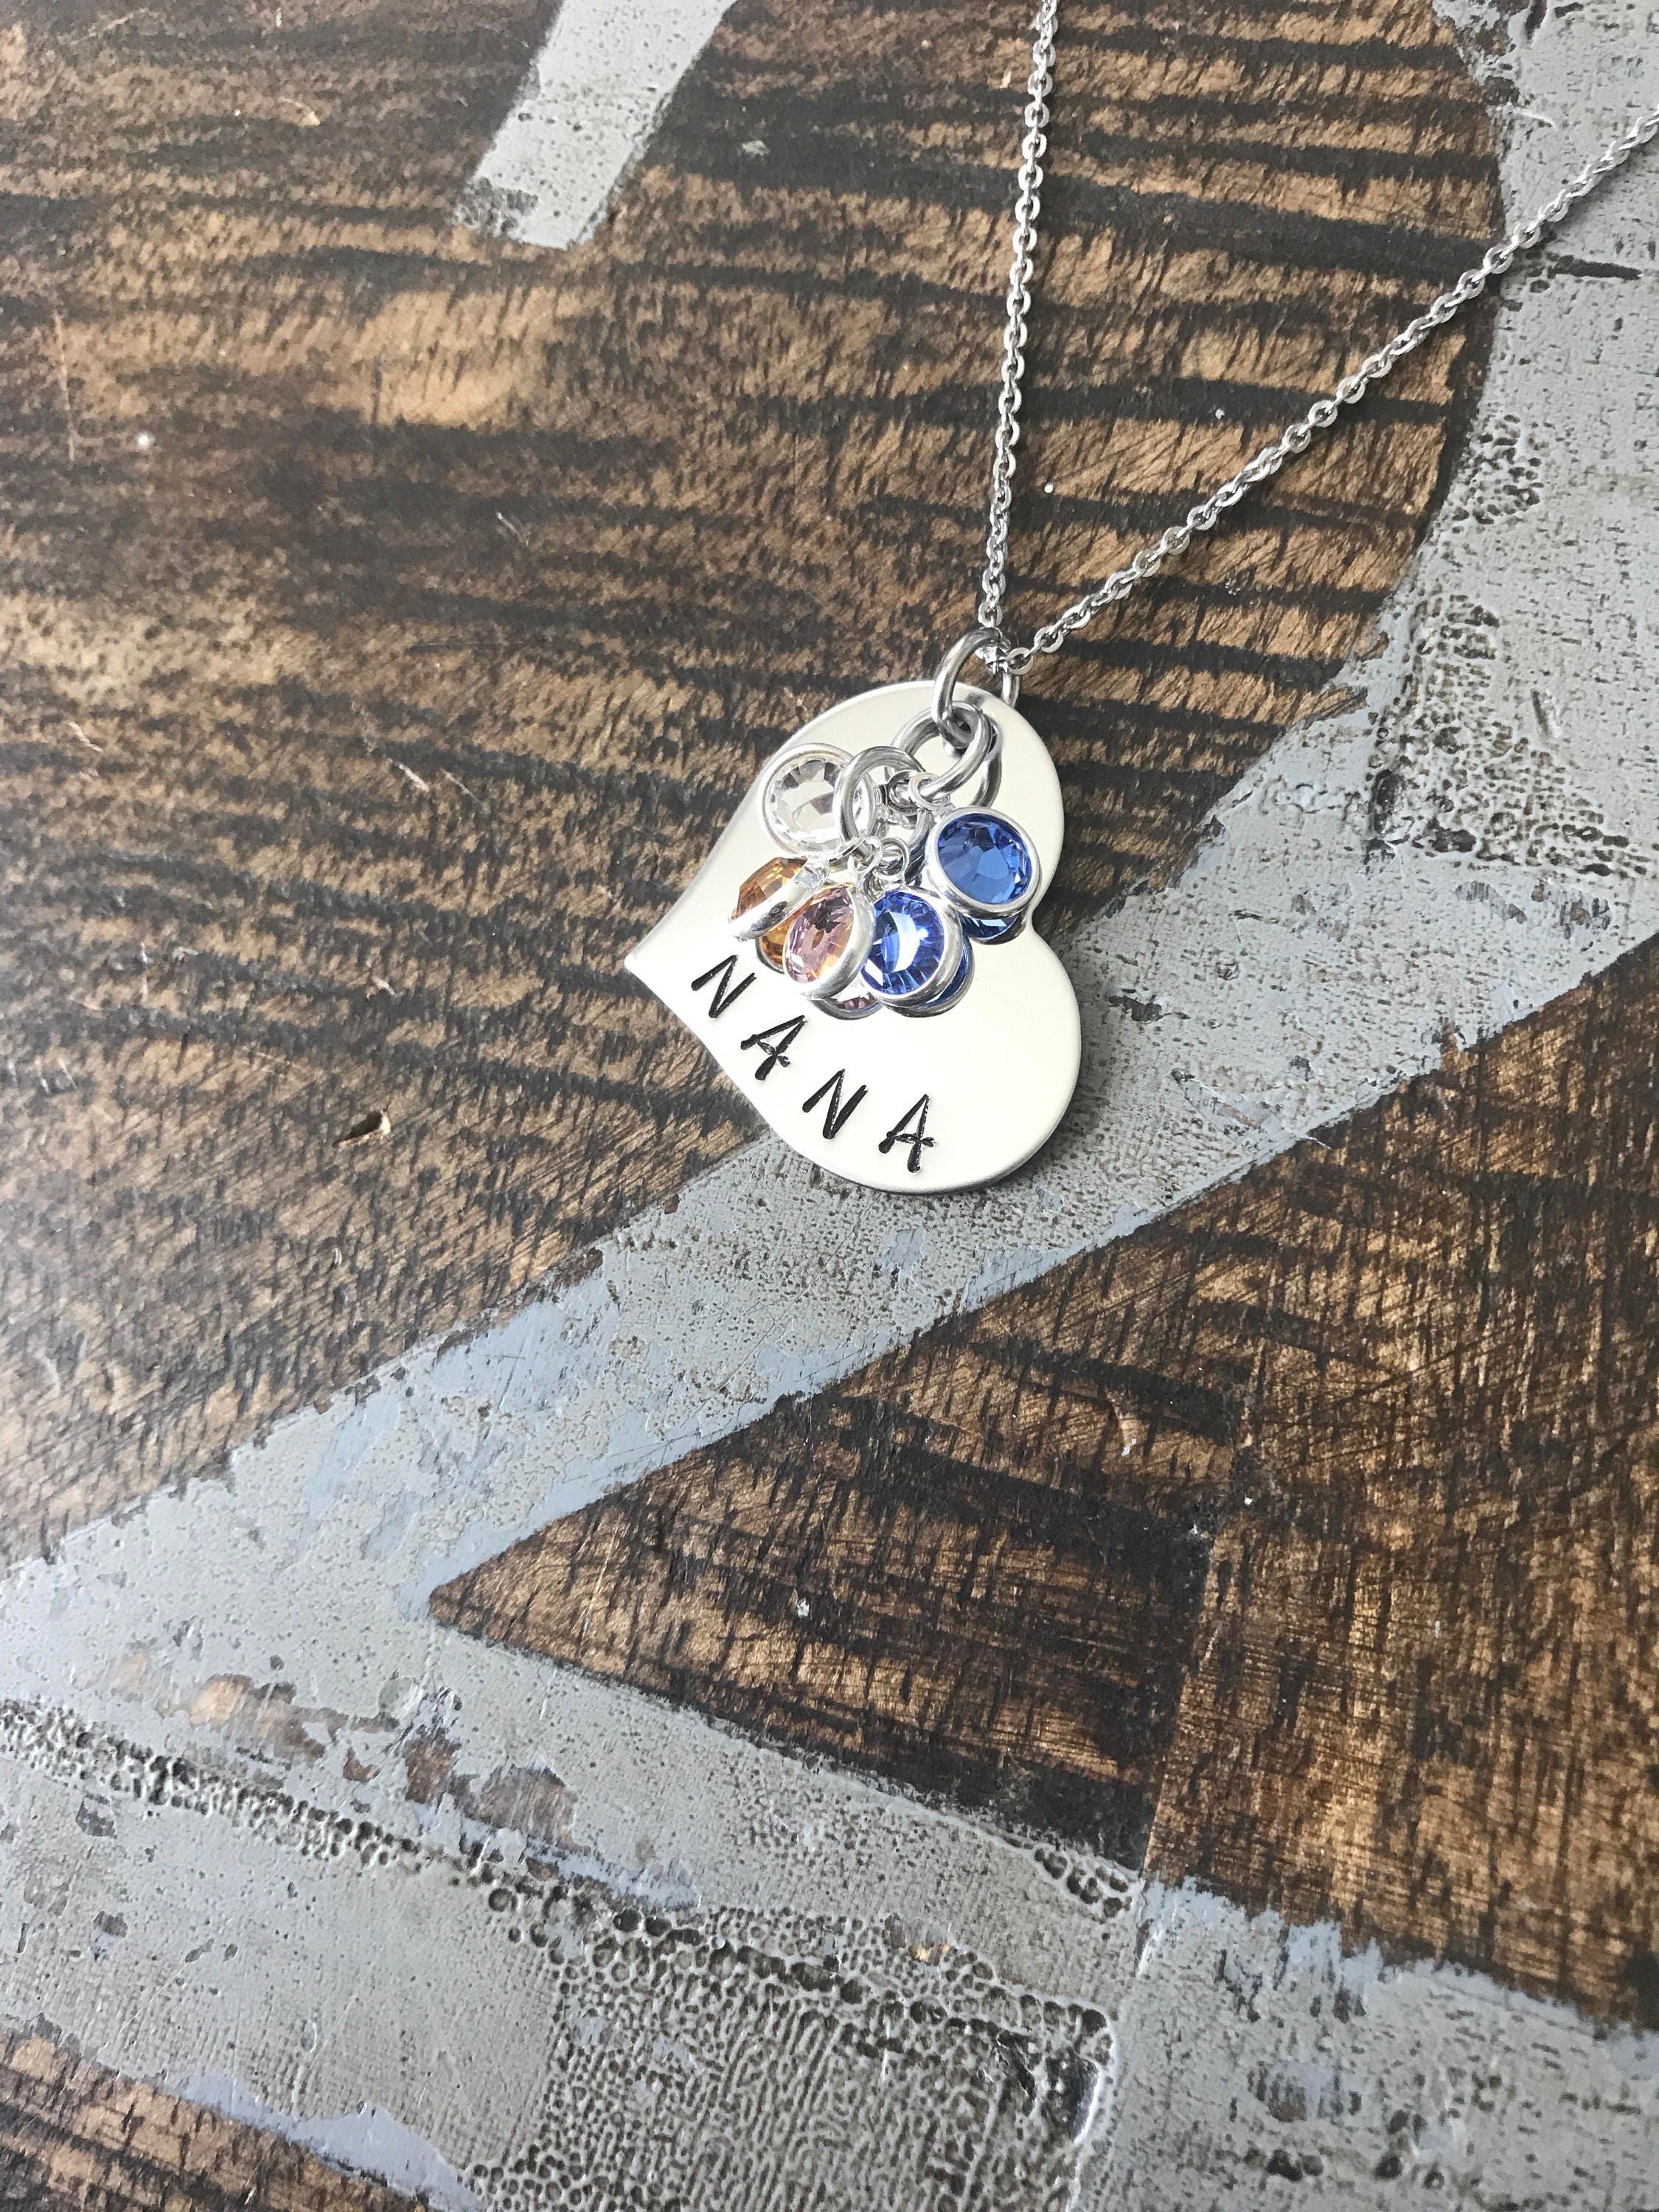 sterling jewelry personalized pendant walmart available silver gold over s family com heart grandkid keepsake necklace ip in birthstone mother